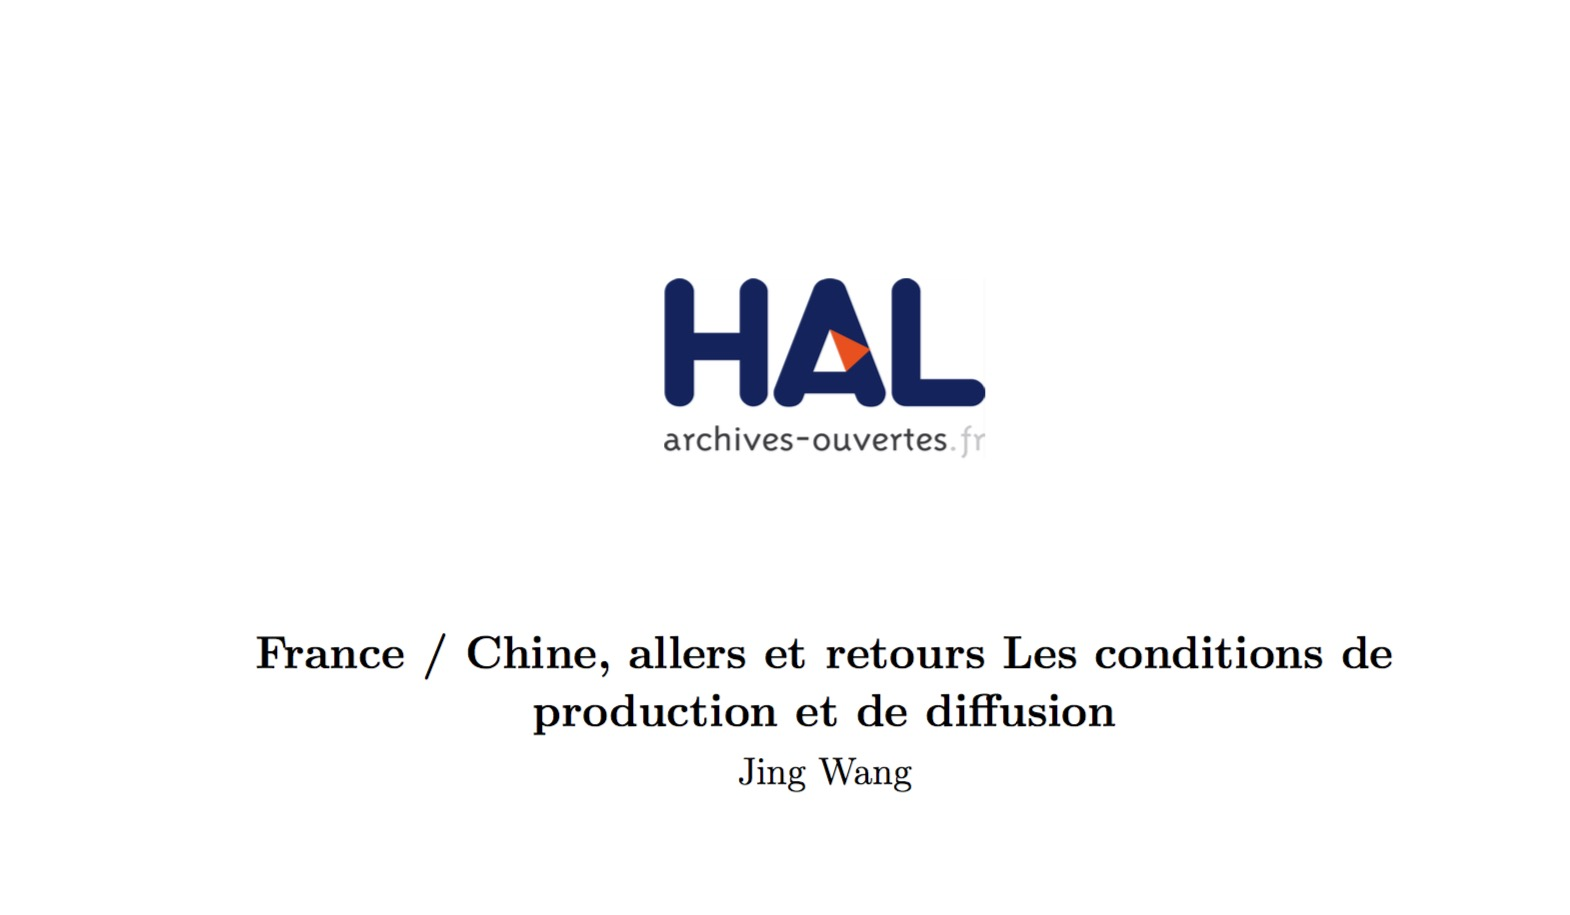 France / Chine, allers et retours Les conditions de production et de diffusion